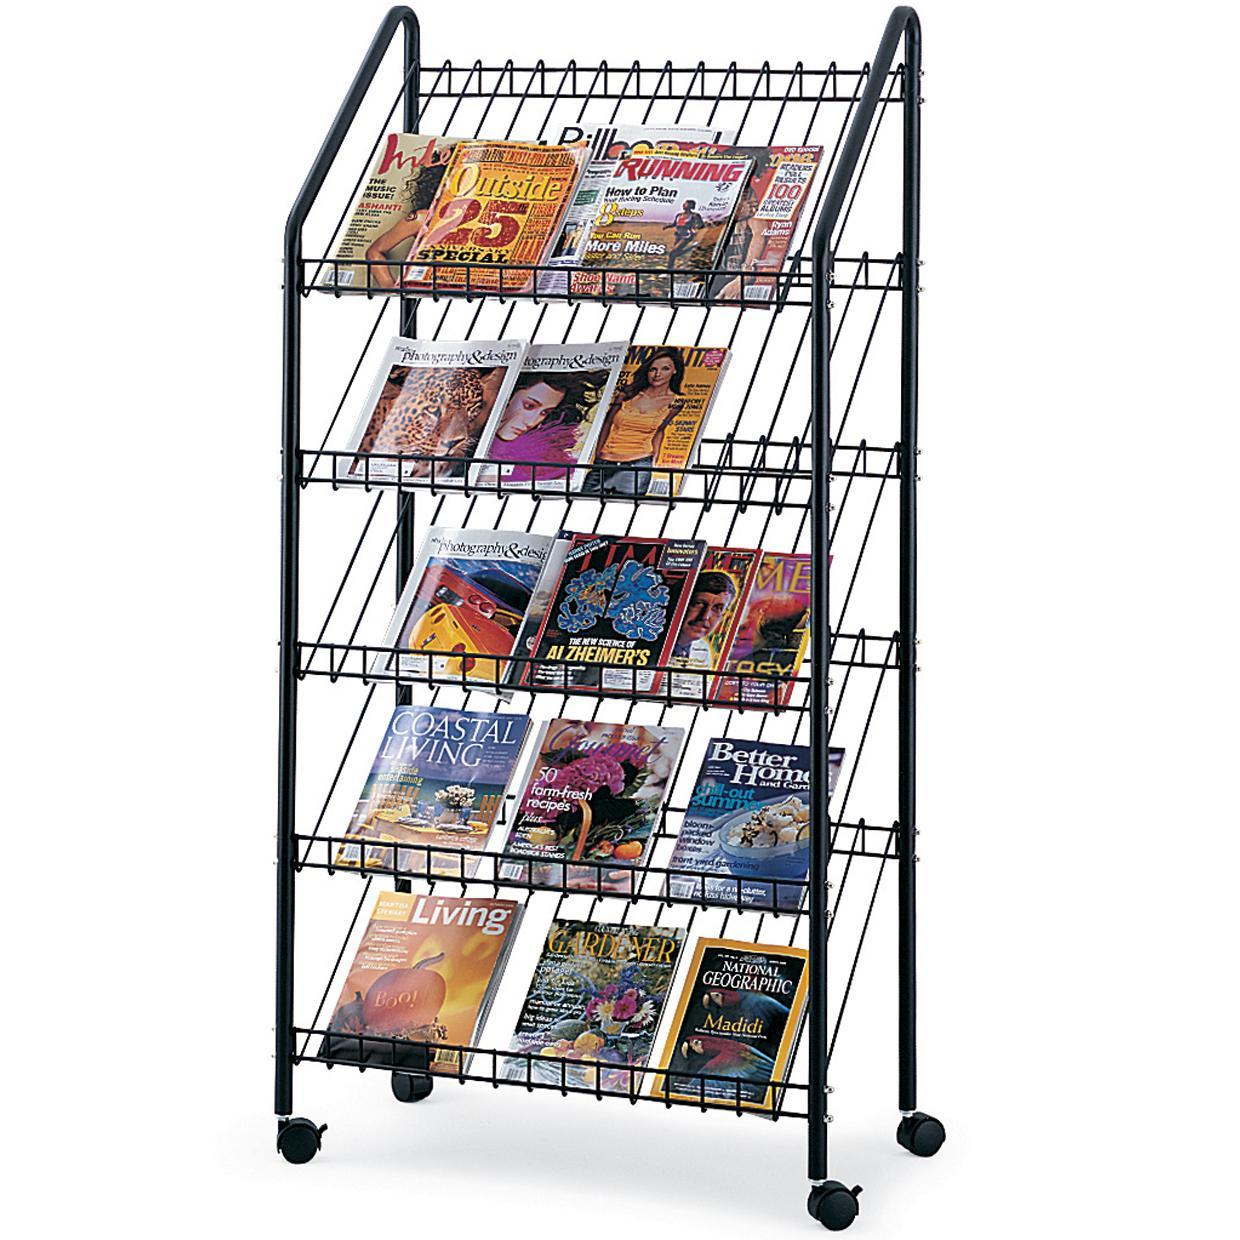 wine holder home tilted polish tiltedacrylicpipetterack pipette nail rotating plexiglass brochure shelves com marketlab mounted racks tract rack wall clear stand cd acrylic full display floor frag literature lulusoso for magazine perspex desk inc towel zoom perspe